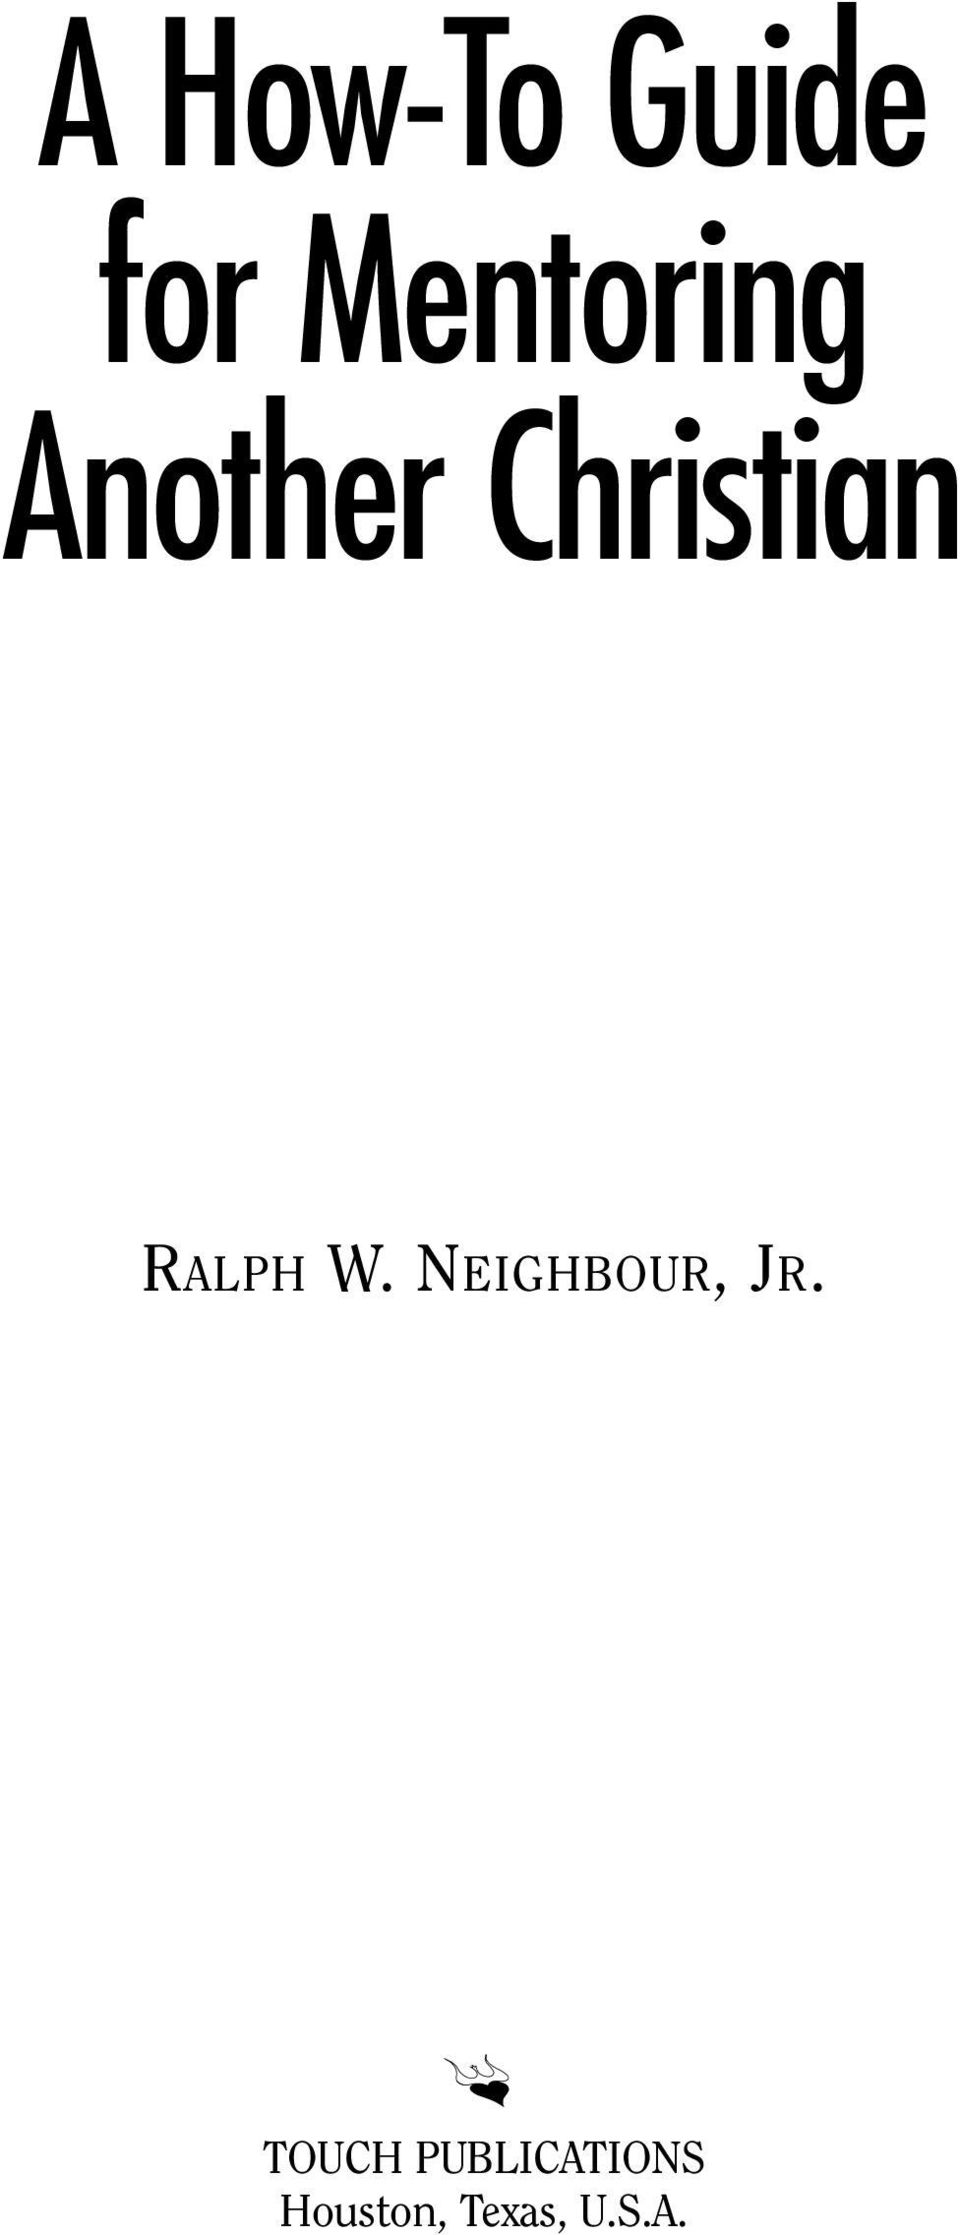 RALPH W. NEIGHBOUR, JR.